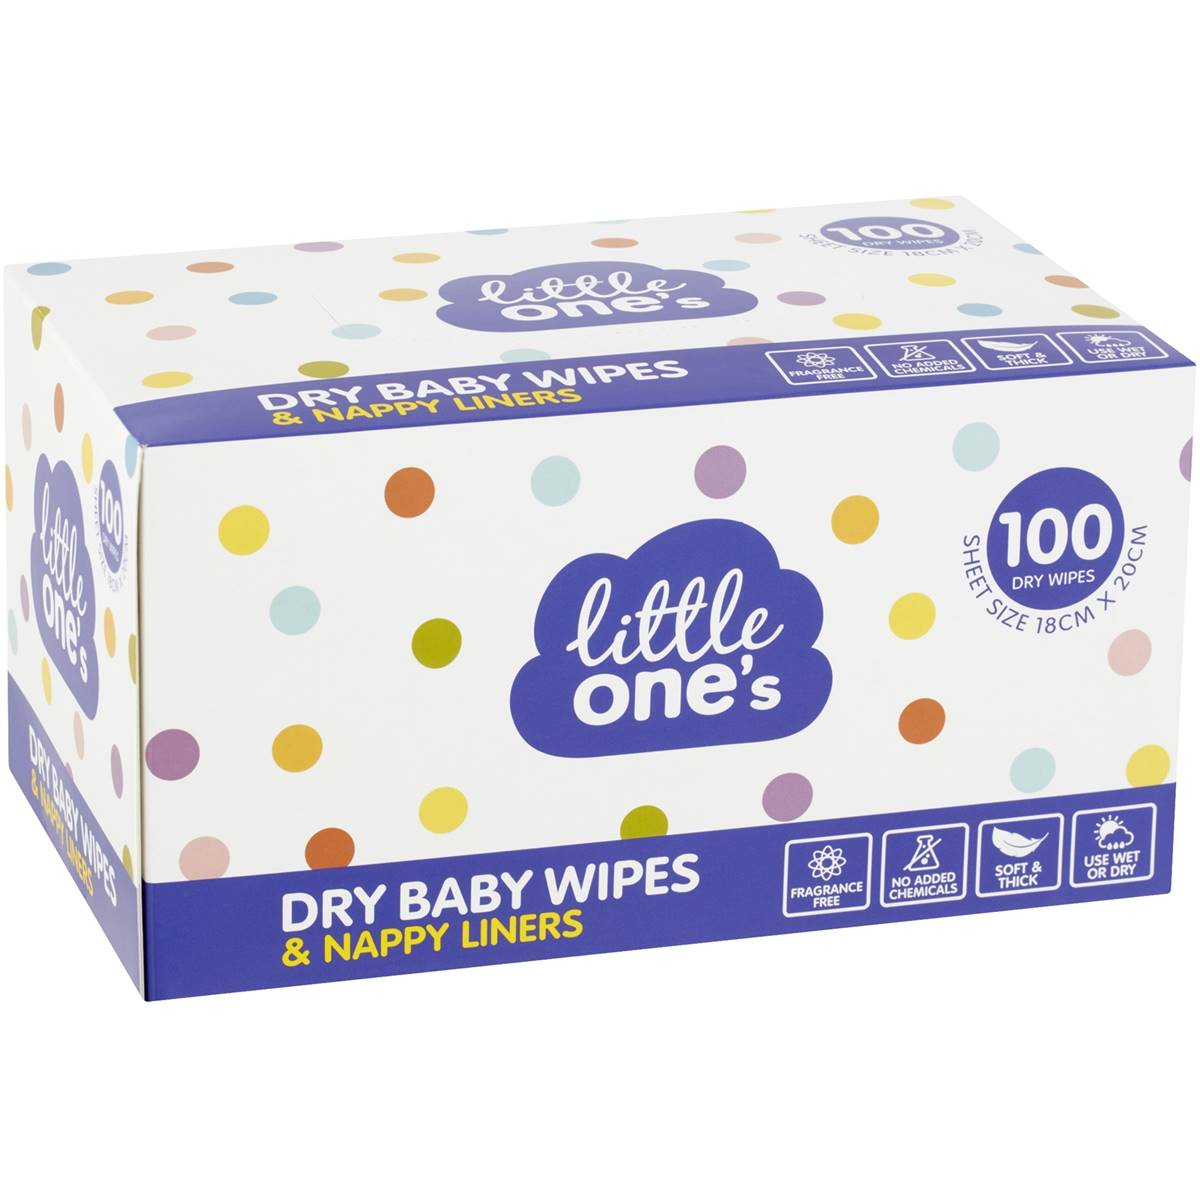 woolworths baby wipes